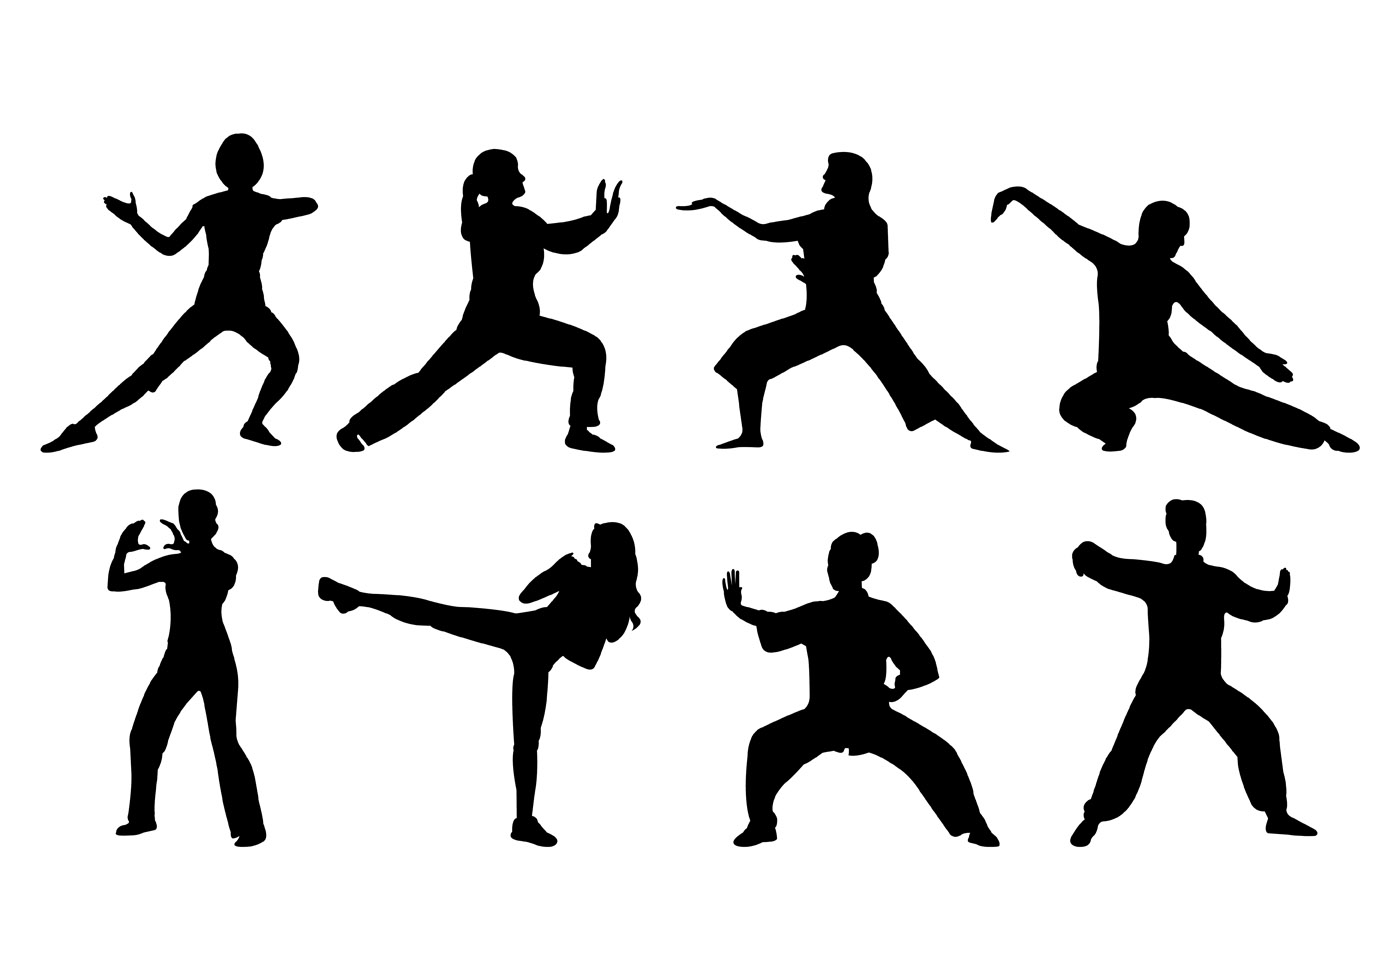 60 Free images of Tai Chi